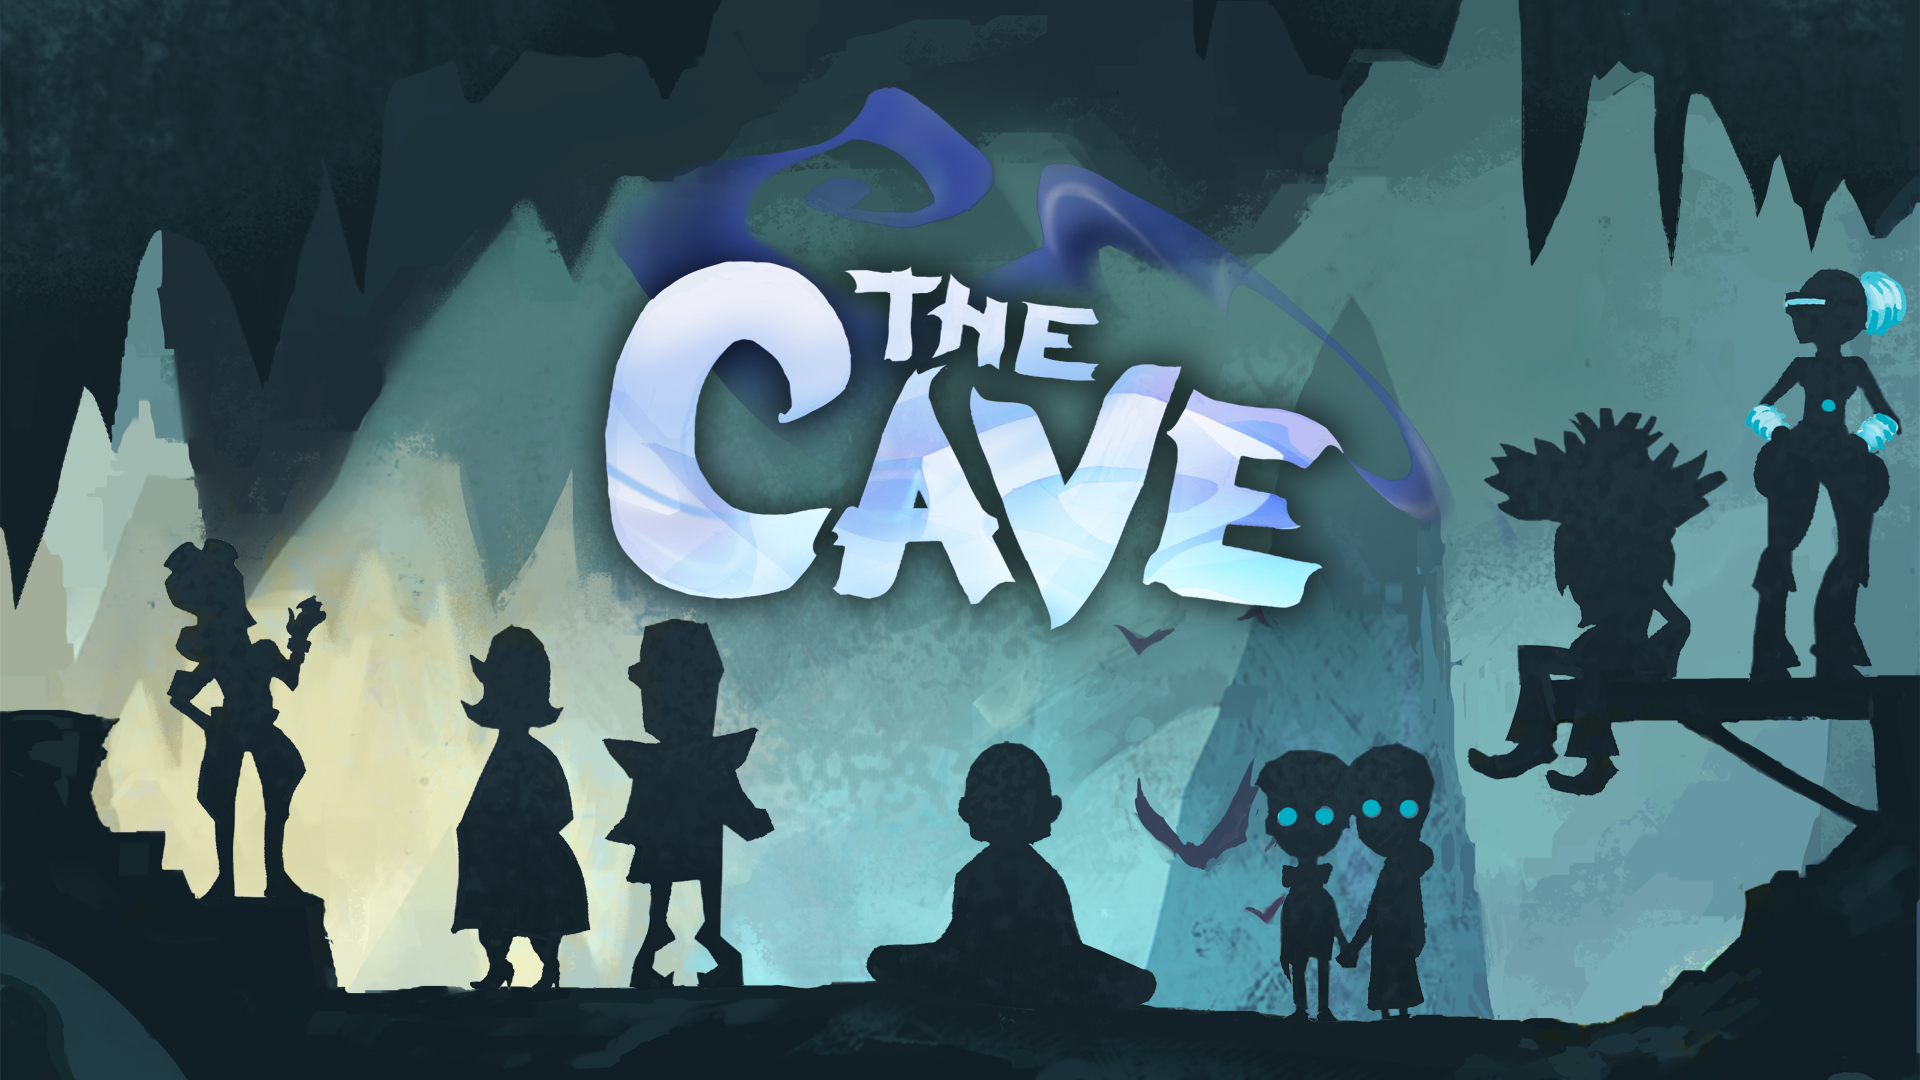 The Cave - iOS (iPhone, iPod touch, iPad)